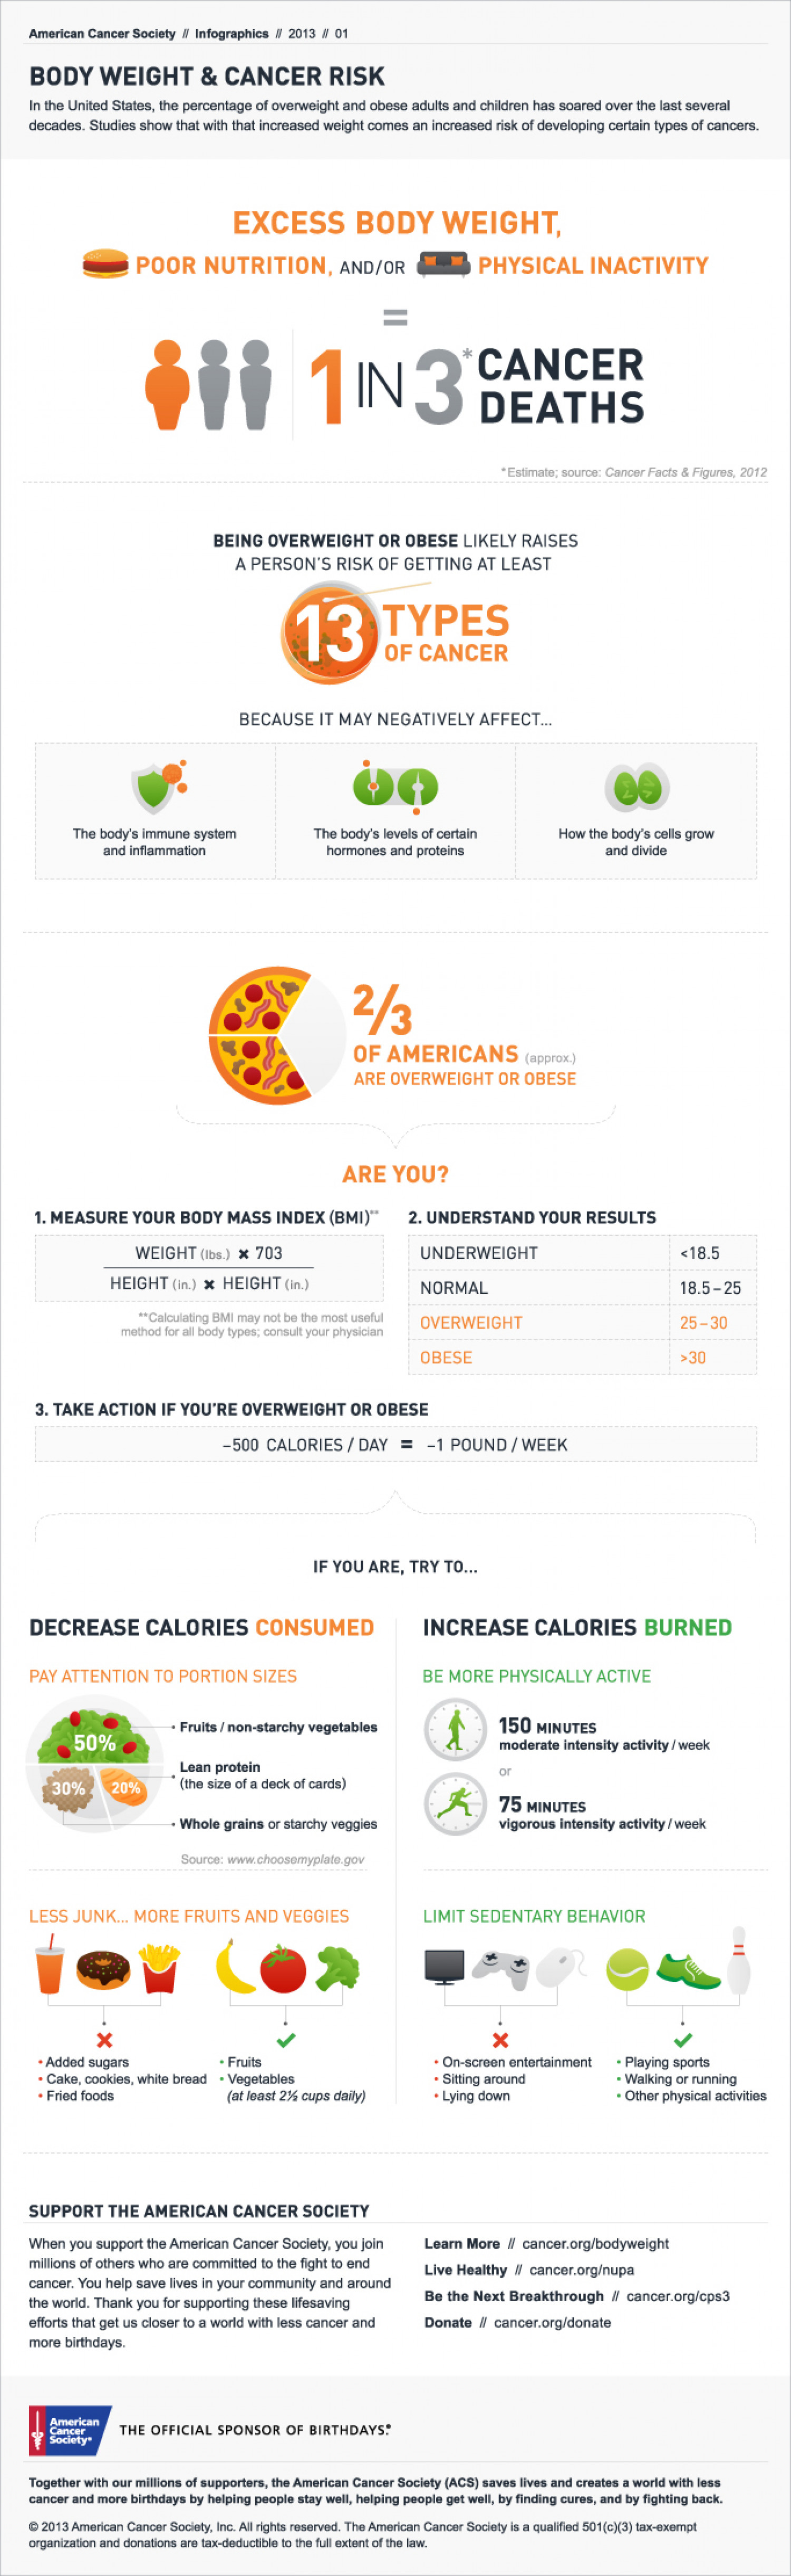 Body Weight & Cancer Risk Infographic